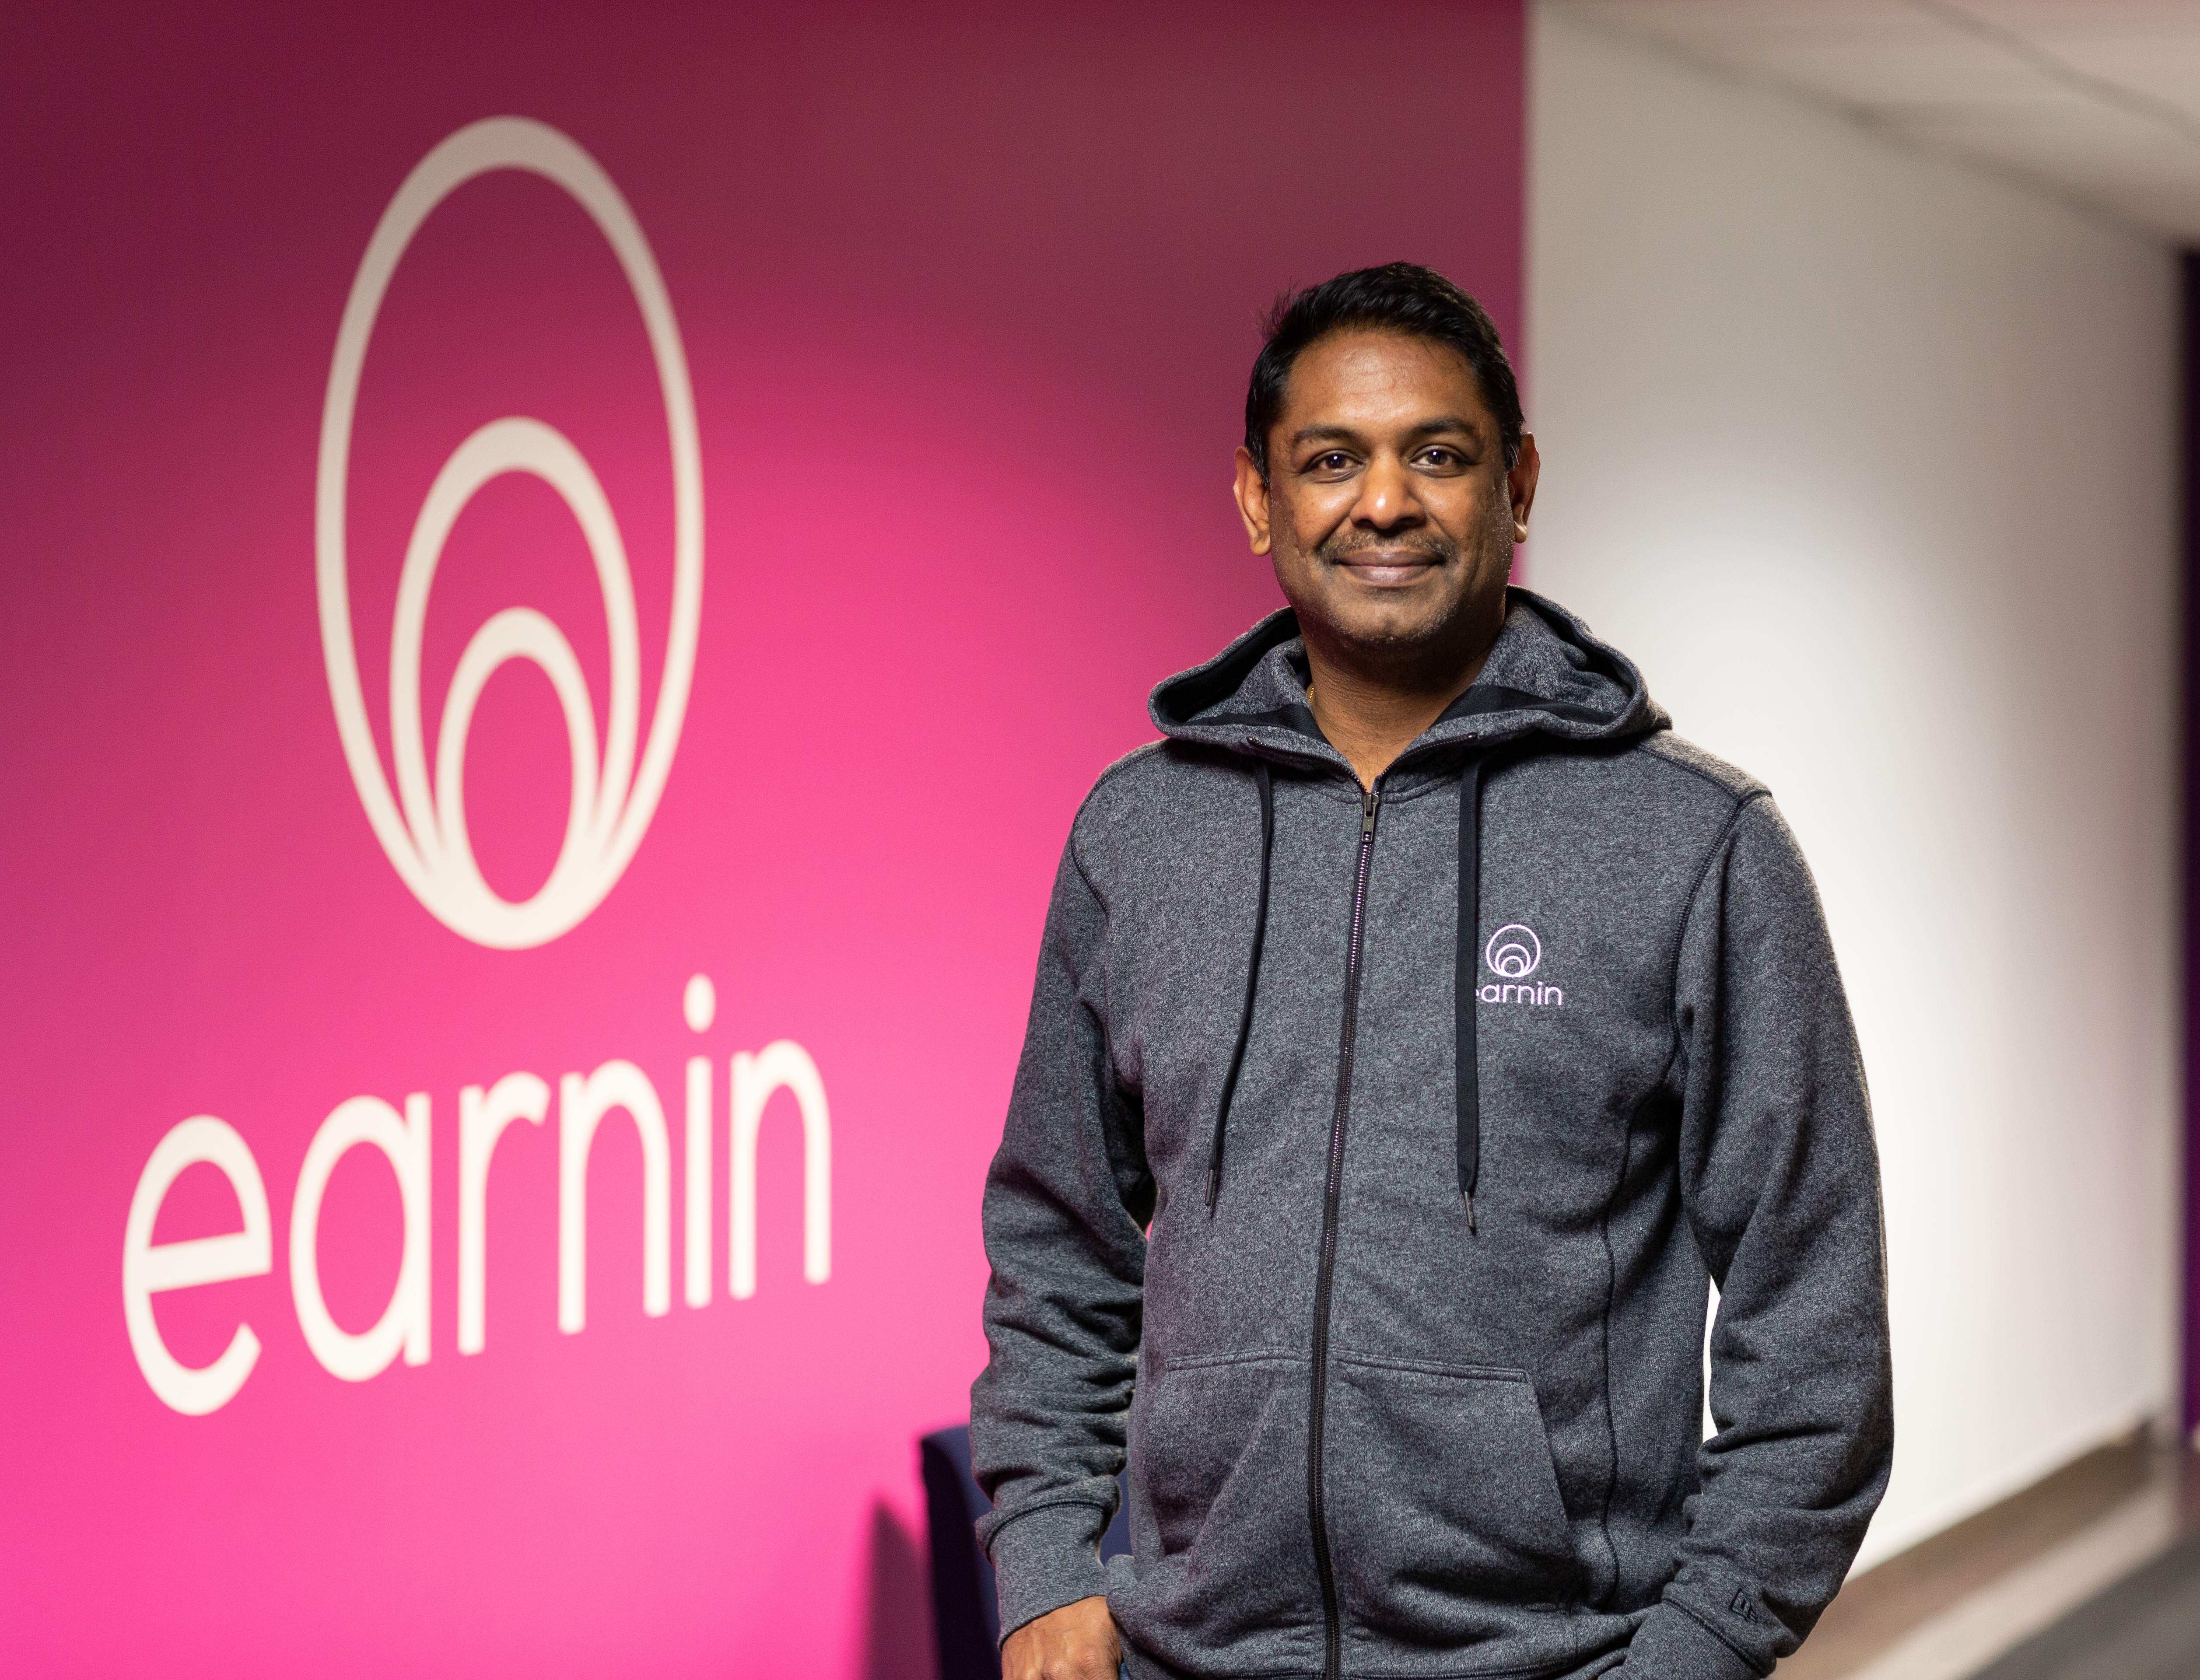 Earnin raises $125M to help workers track and cash out wages in real